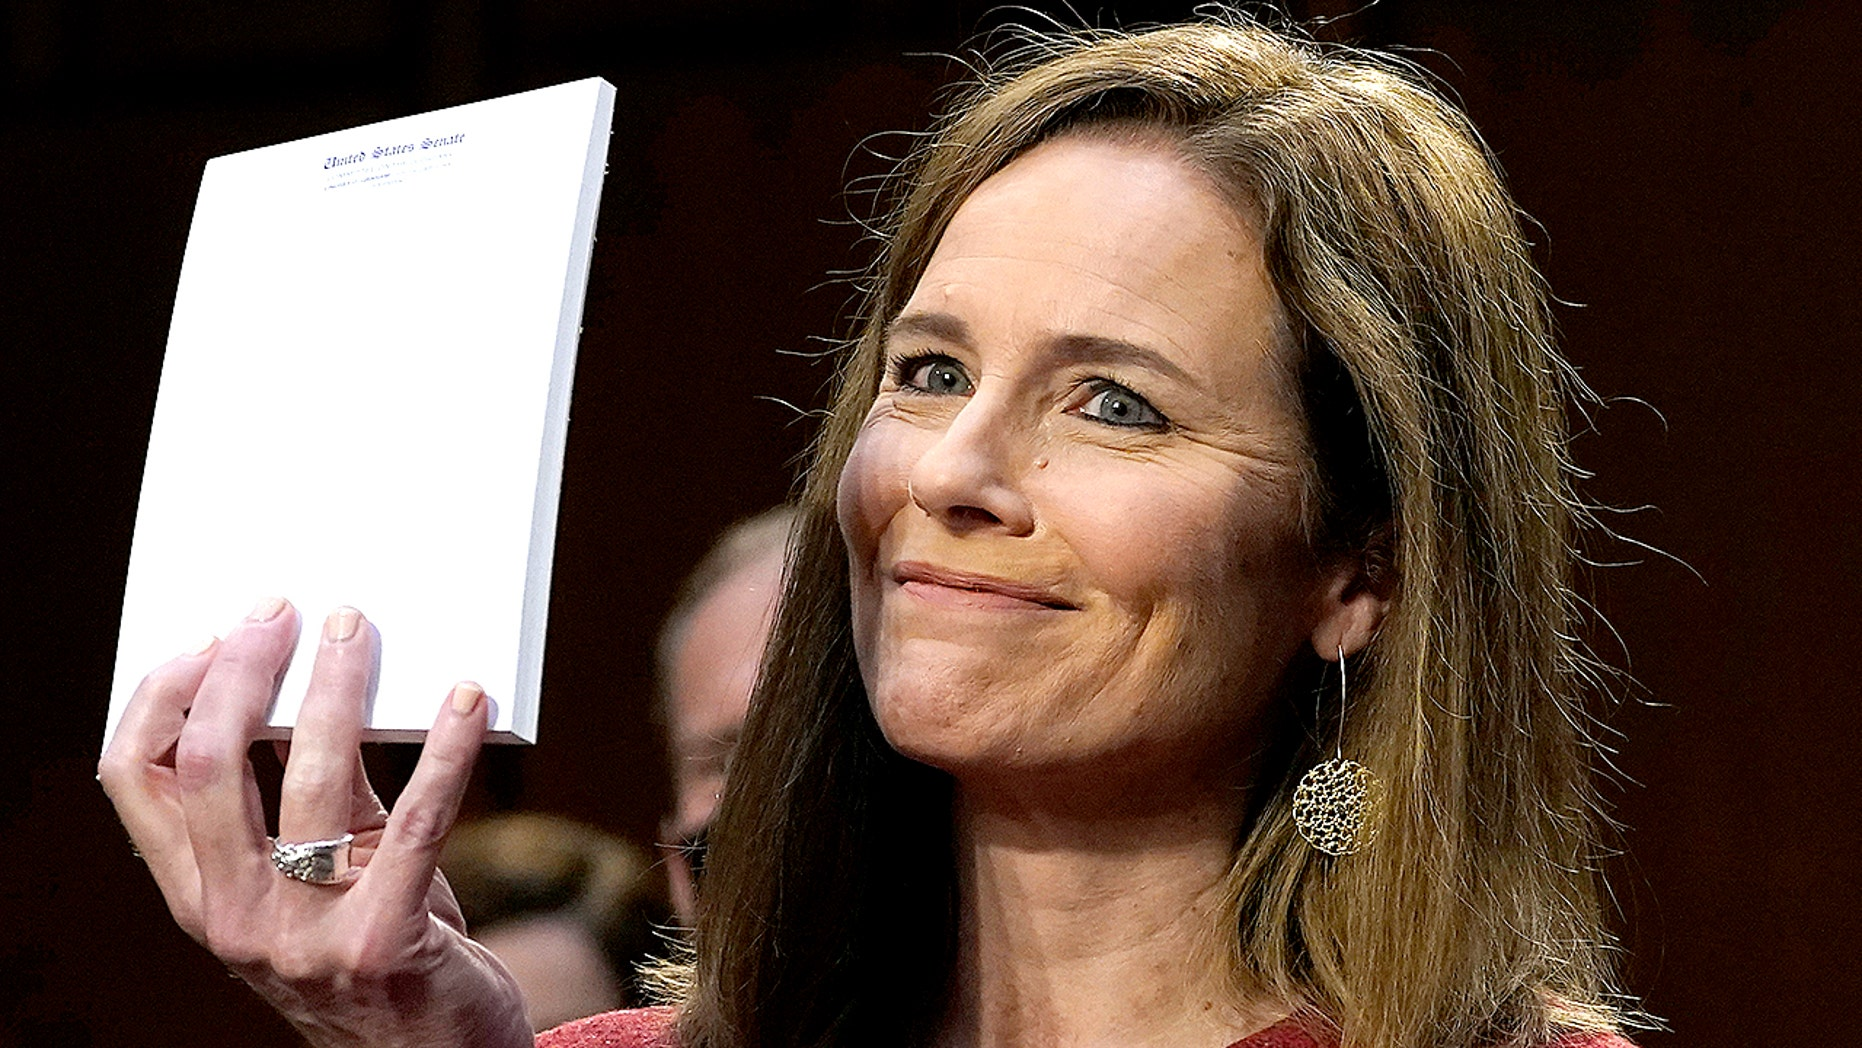 Amy Coney Barrett handled Supreme Court confirmation hearing with grace, poise: experts